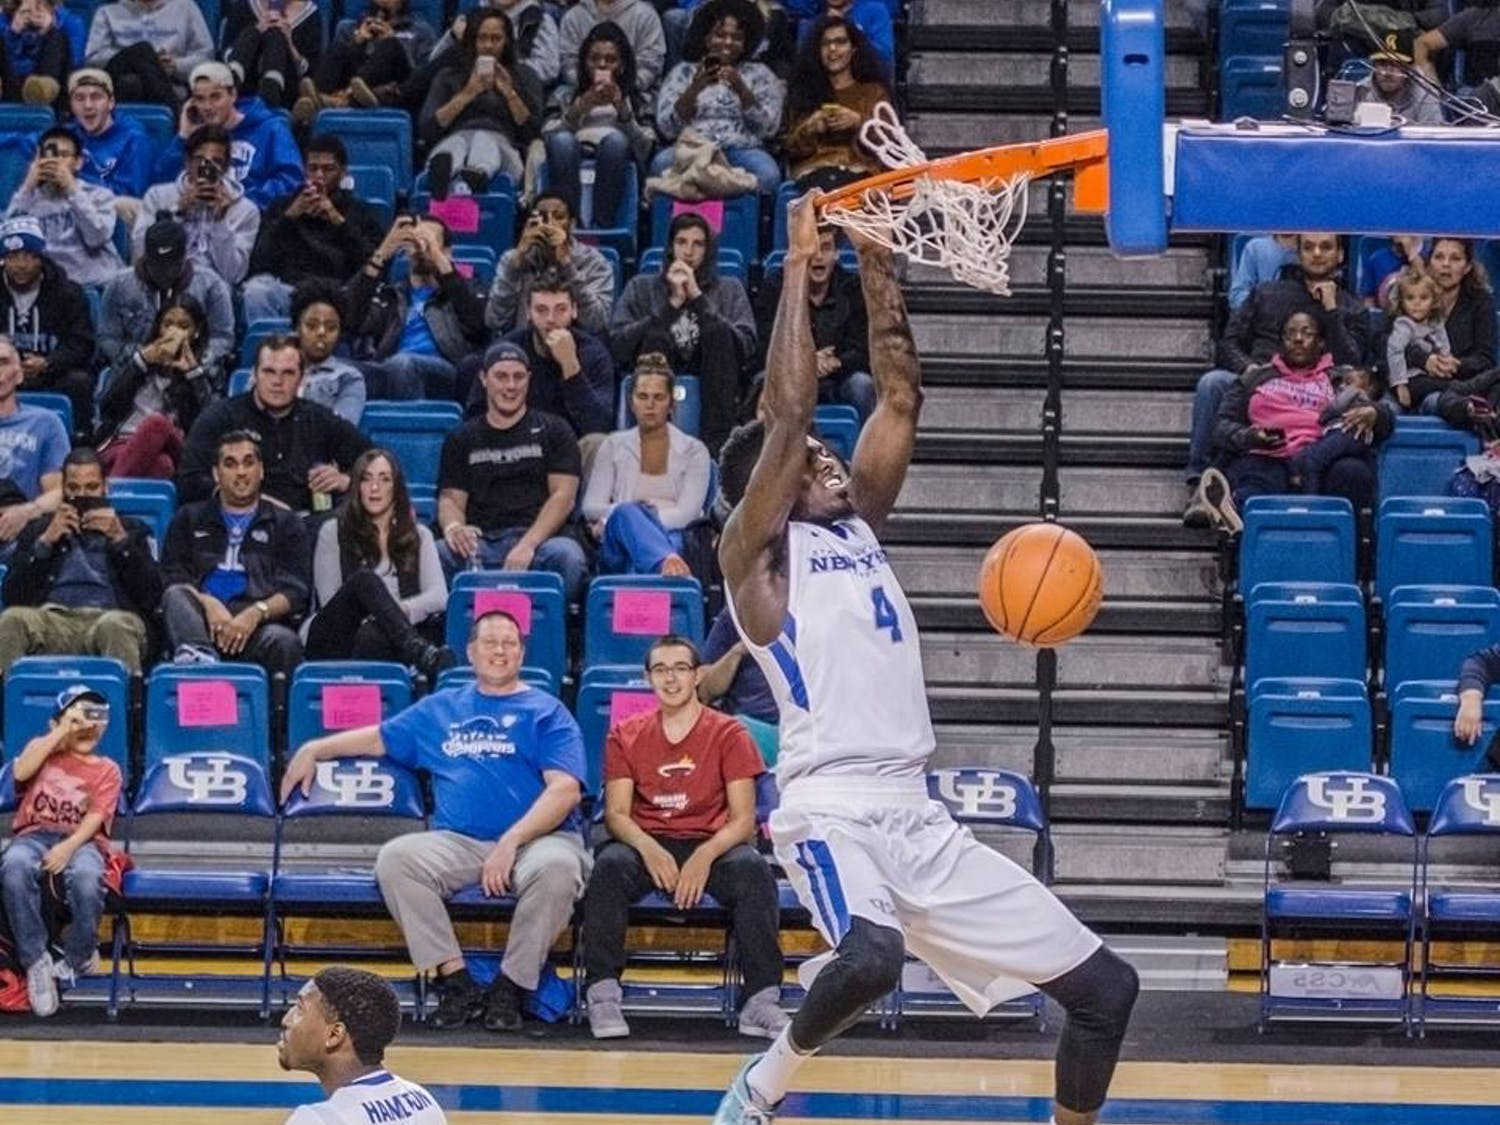 The men and women's basketball programs held their annual Bulls Madness pep rally in Alumni Arena Friday night. The night including player and coach introductions and slam-dunk and three-point contests.